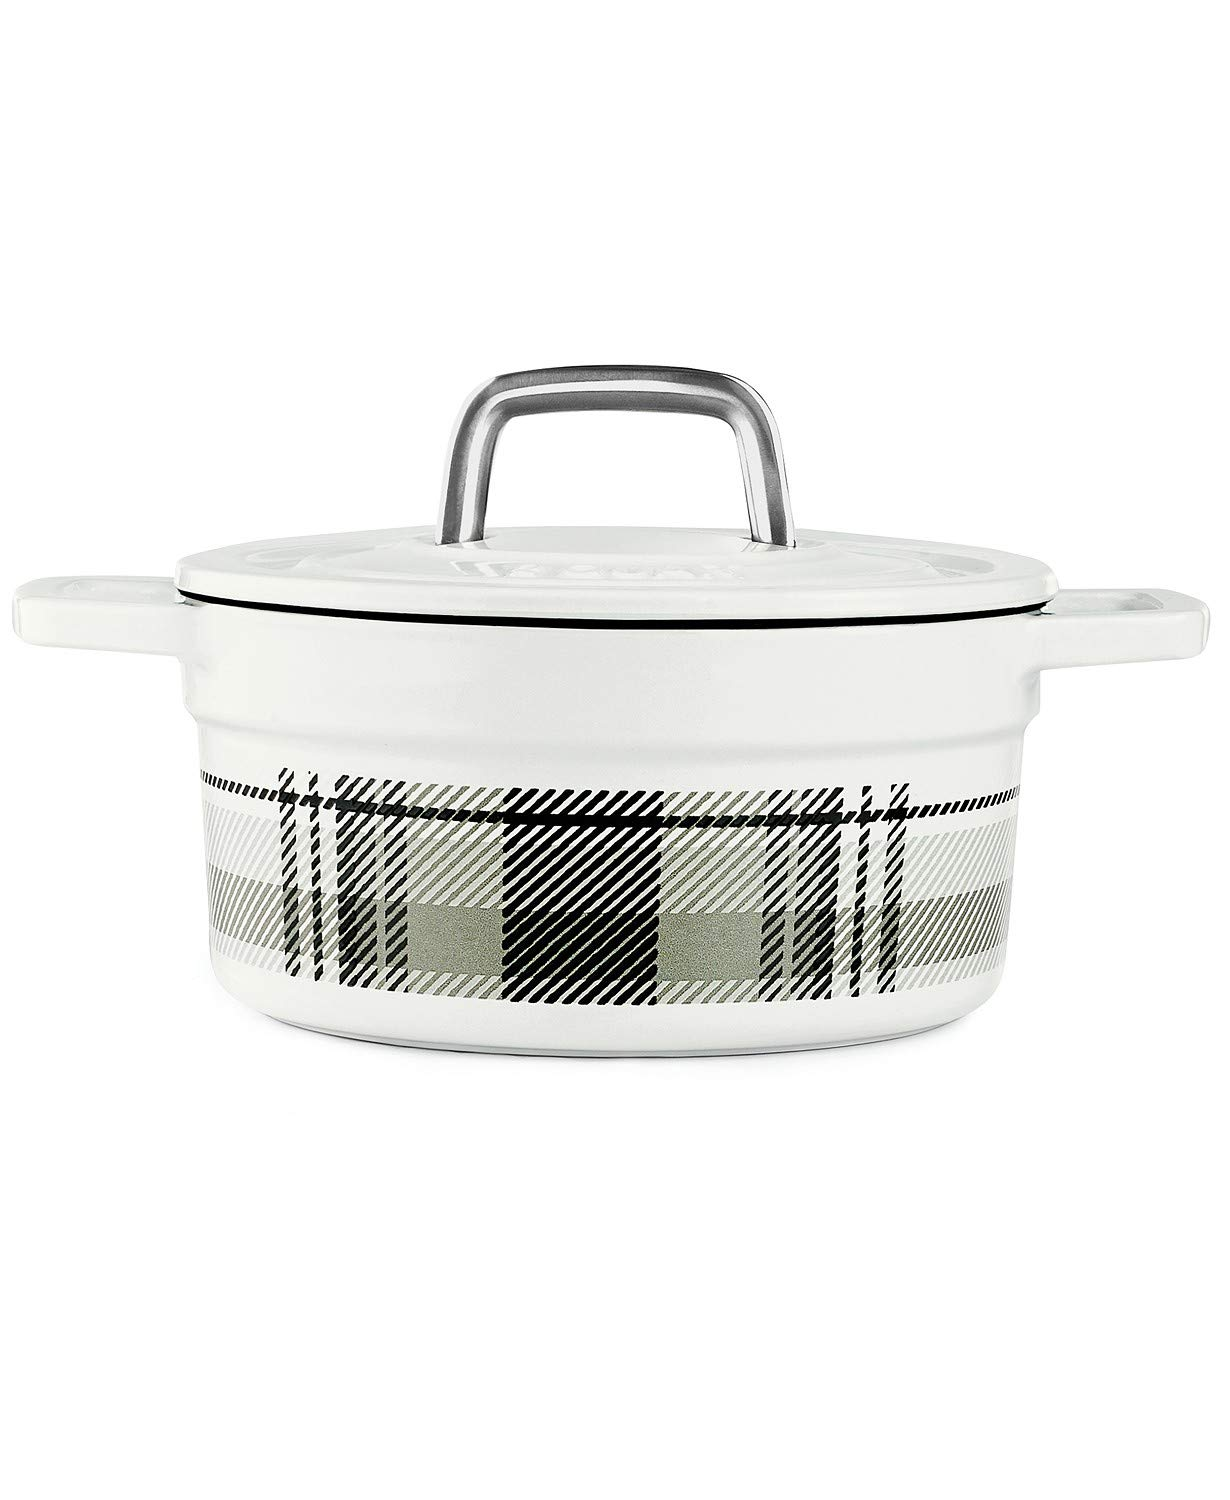 Martha Stewart Collector's Enameled Cast Iron Dutch Oven, 2 QT (1.89 L) Round Casserole (White/Grey Plaid)